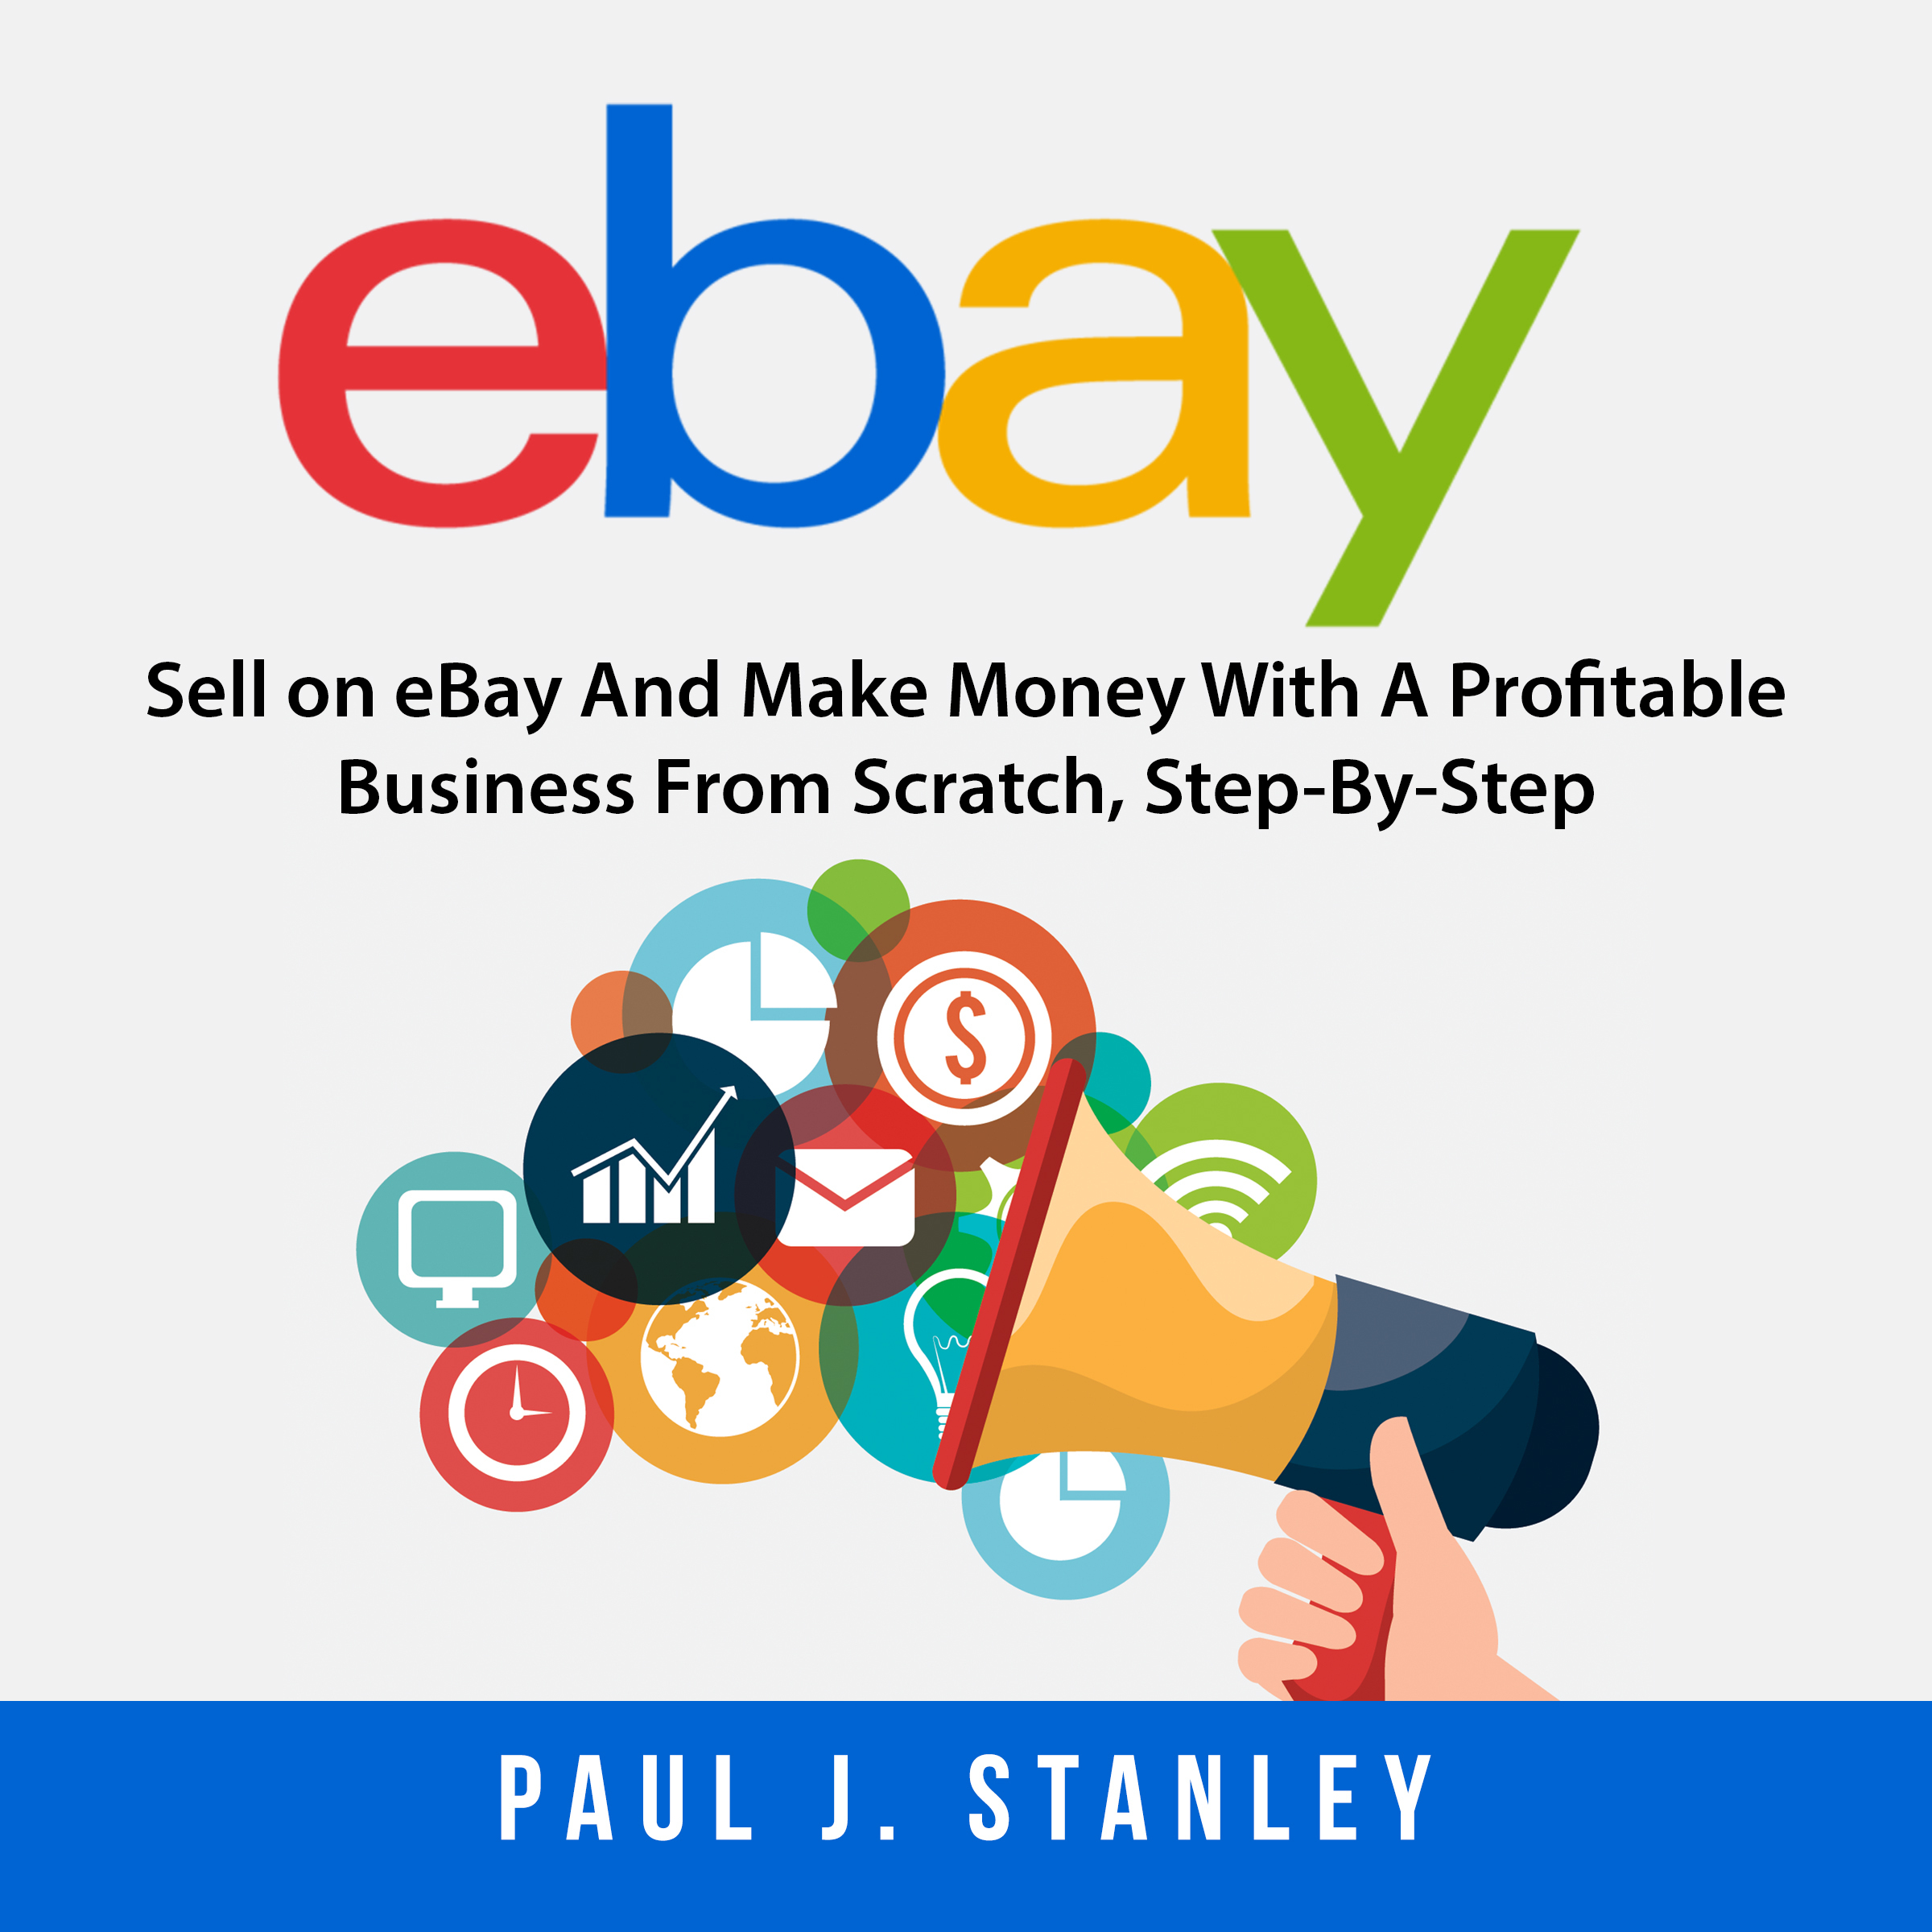 Ebay Sell On Ebay And Make Money With A Profitable Business From Scratch Step By Step Guide Audiobook Listen Instantly